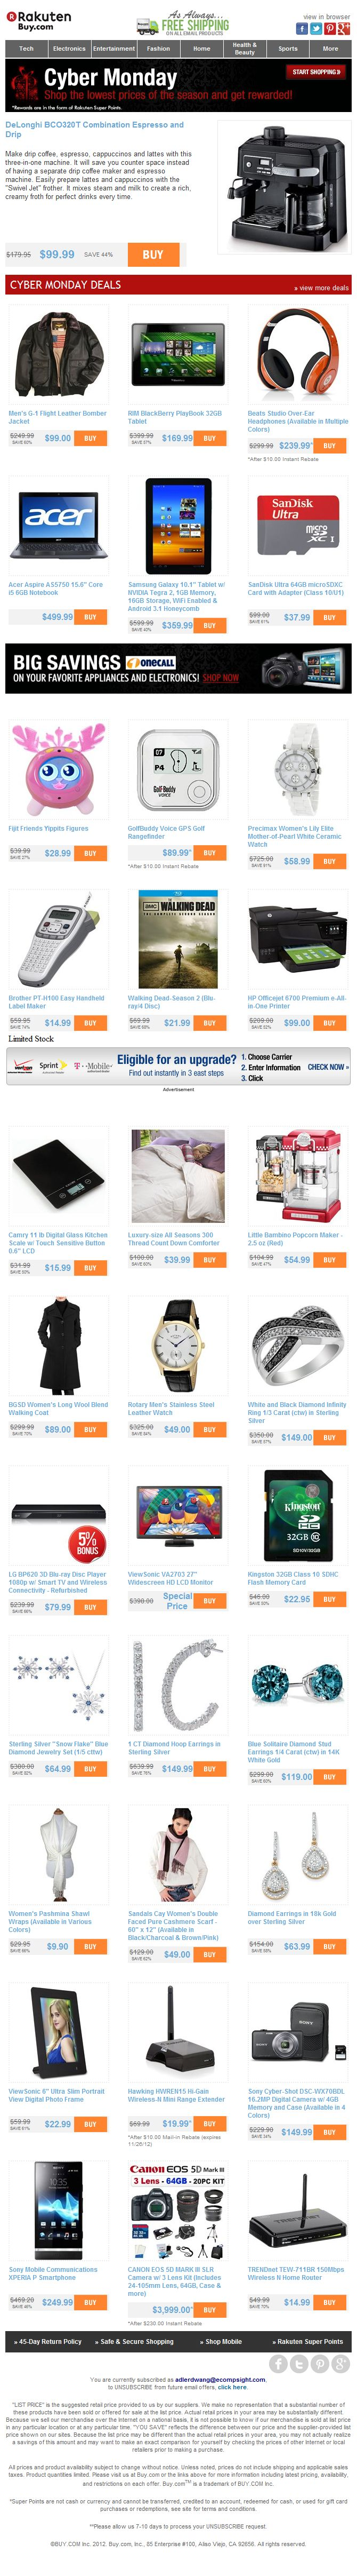 47 best cyber monday email design gallery images on pinterest cyber monday is almost over delonghi espressoand drip 9999 blackberry playbook tablet 16999 blackberry playbookdigital photo frameemail jeuxipadfo Choice Image